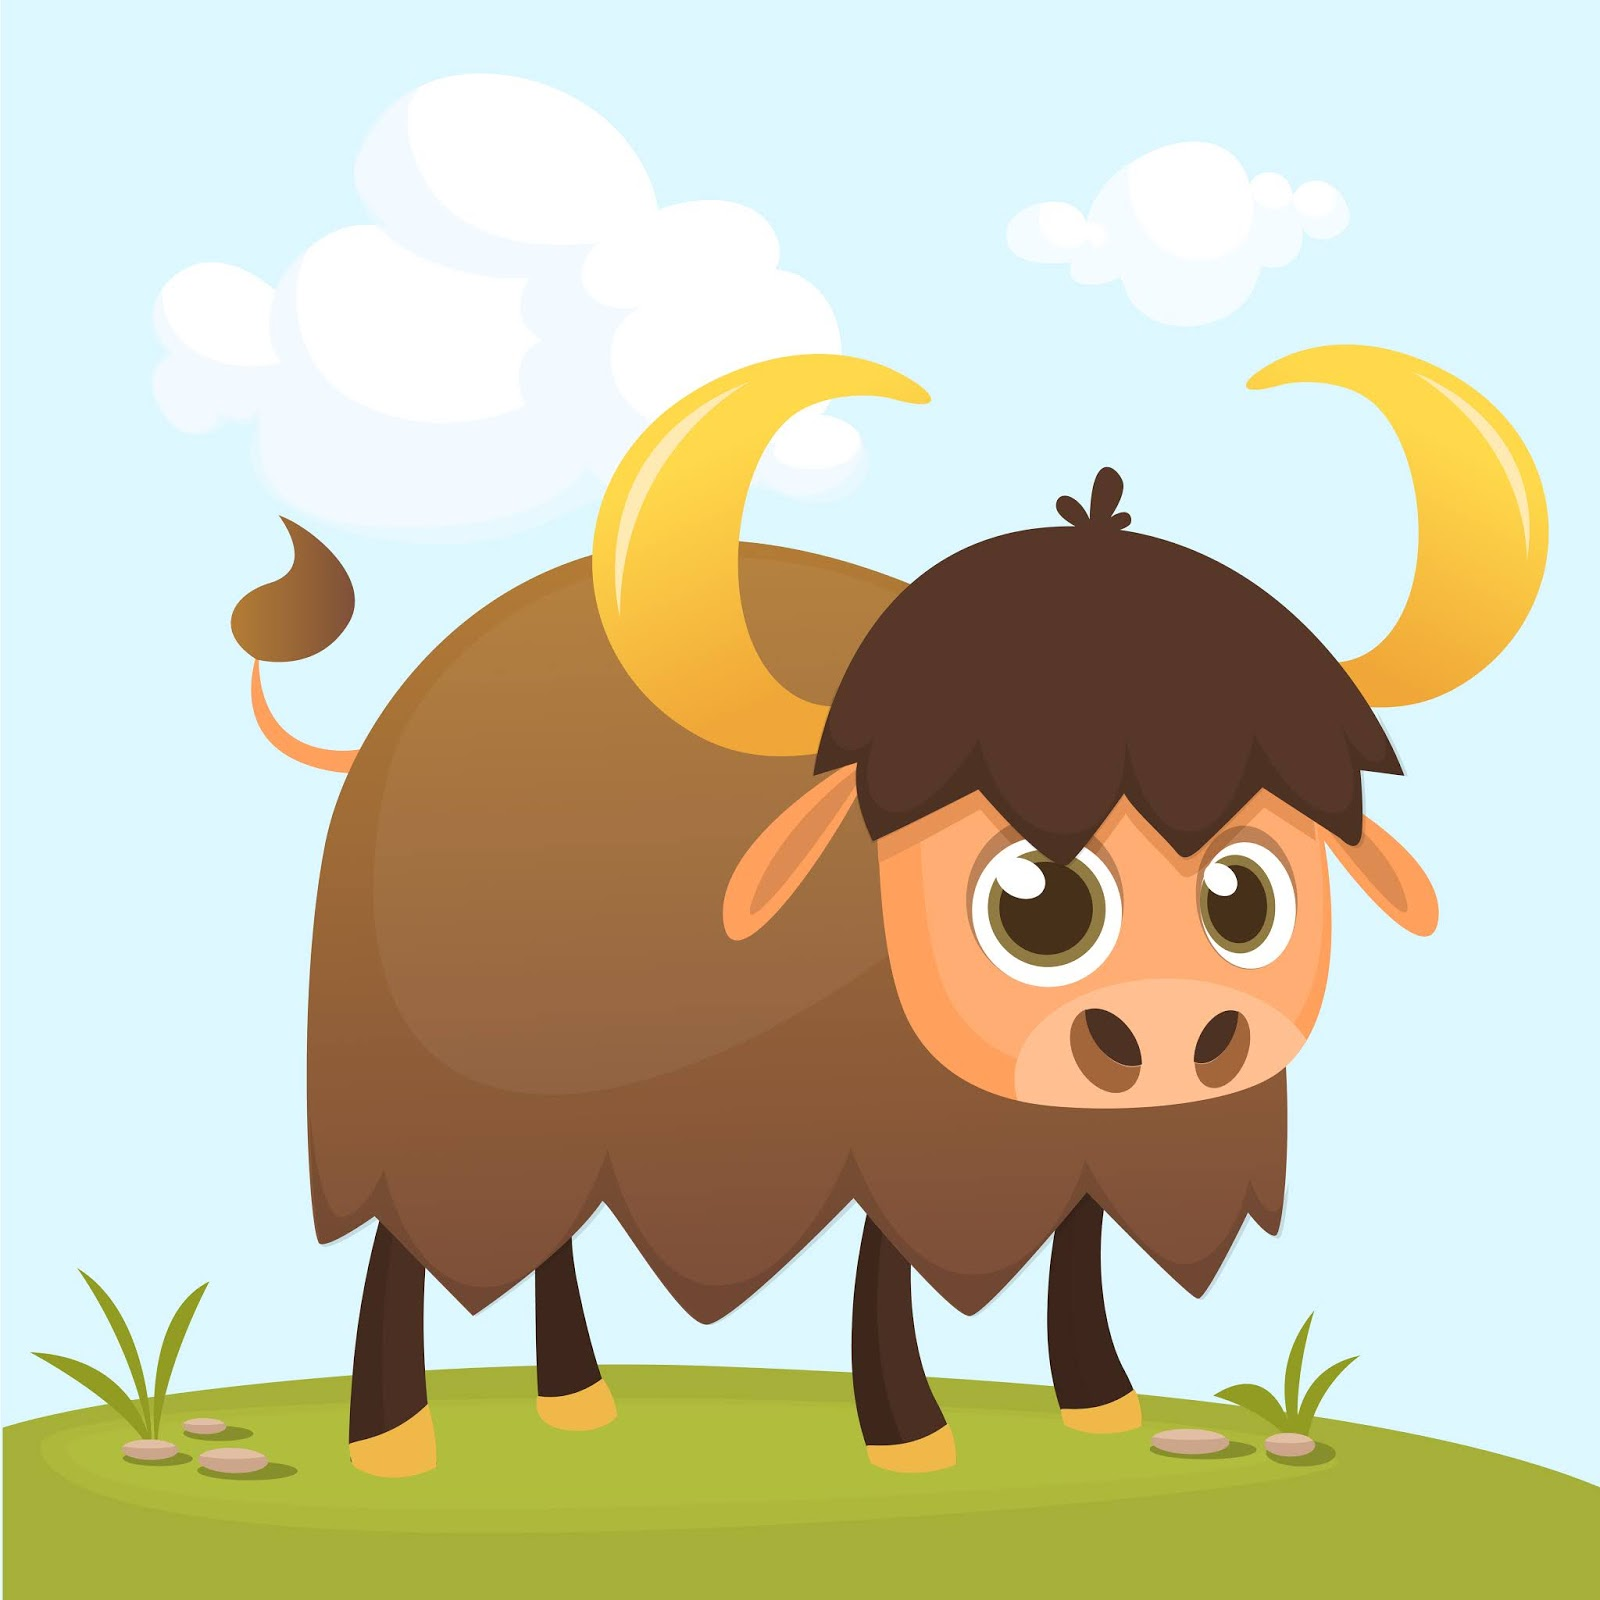 Cartoon Funny Bull Illustration Free Download Vector CDR, AI, EPS and PNG Formats